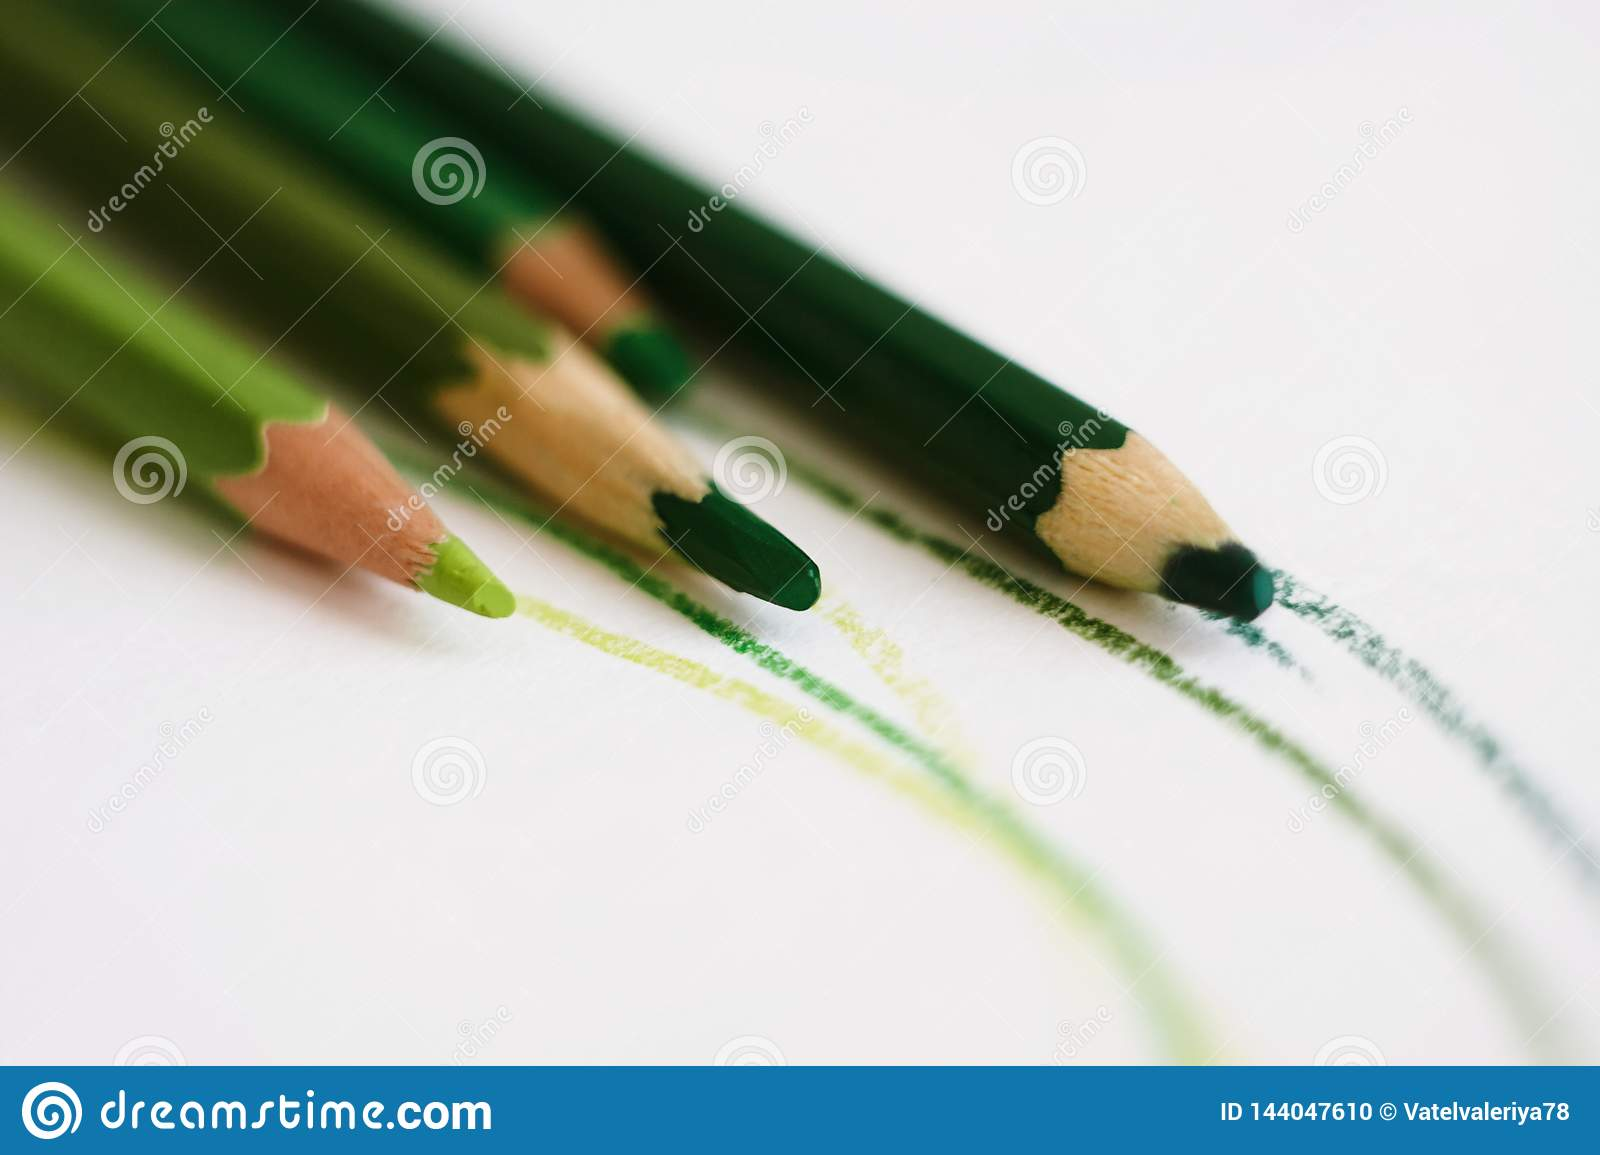 A set of pencils in different shades of green